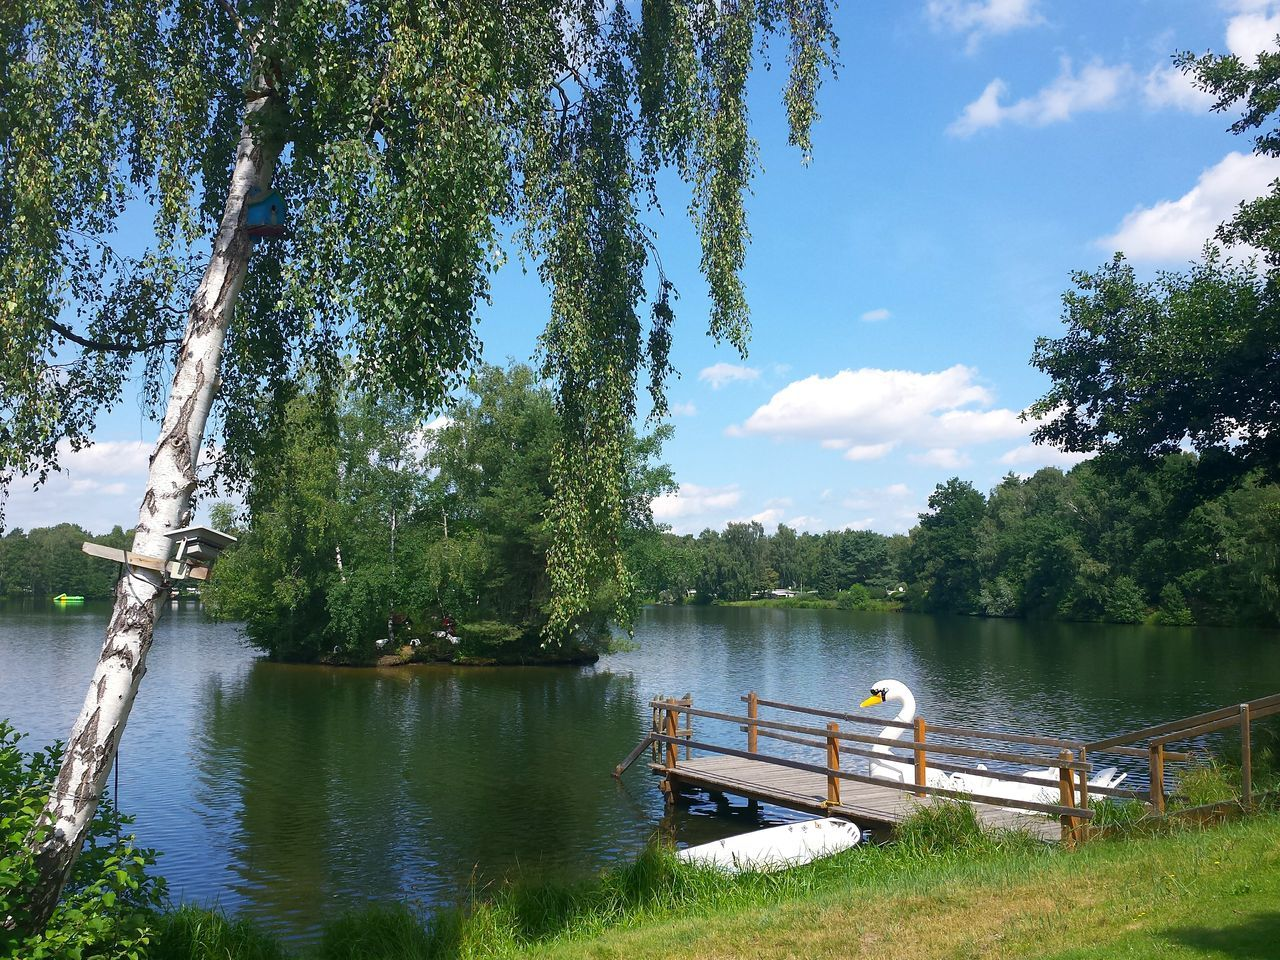 Springhorstsee, Burgwedel, Lower Saxony Lake View Lake Lakeside Lake Escape Relaxing Moments Relaxing View Relaxing Time Tretboot Swan Surf Board Ladyphotographerofthemonth Showcase: July Holidays Erholungsgebiet Erholsam Lovely Lake View Lakes  Colour Of Life